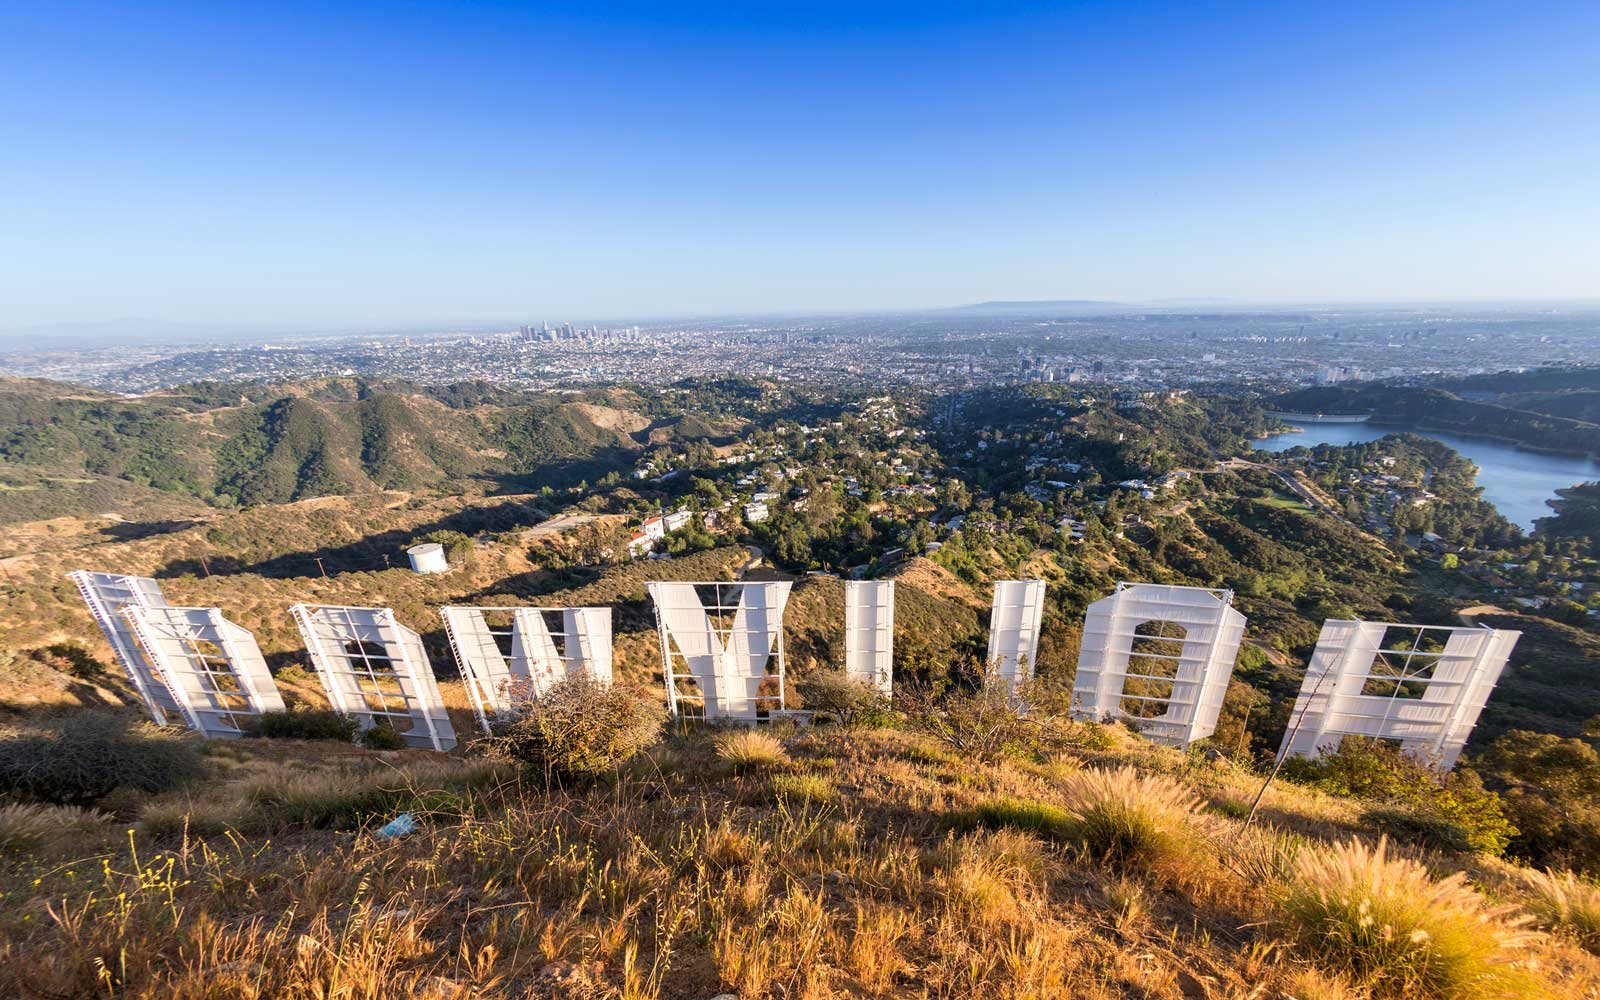 Hiking to the Hollywood Sign Could Soon Get More Difficult ...